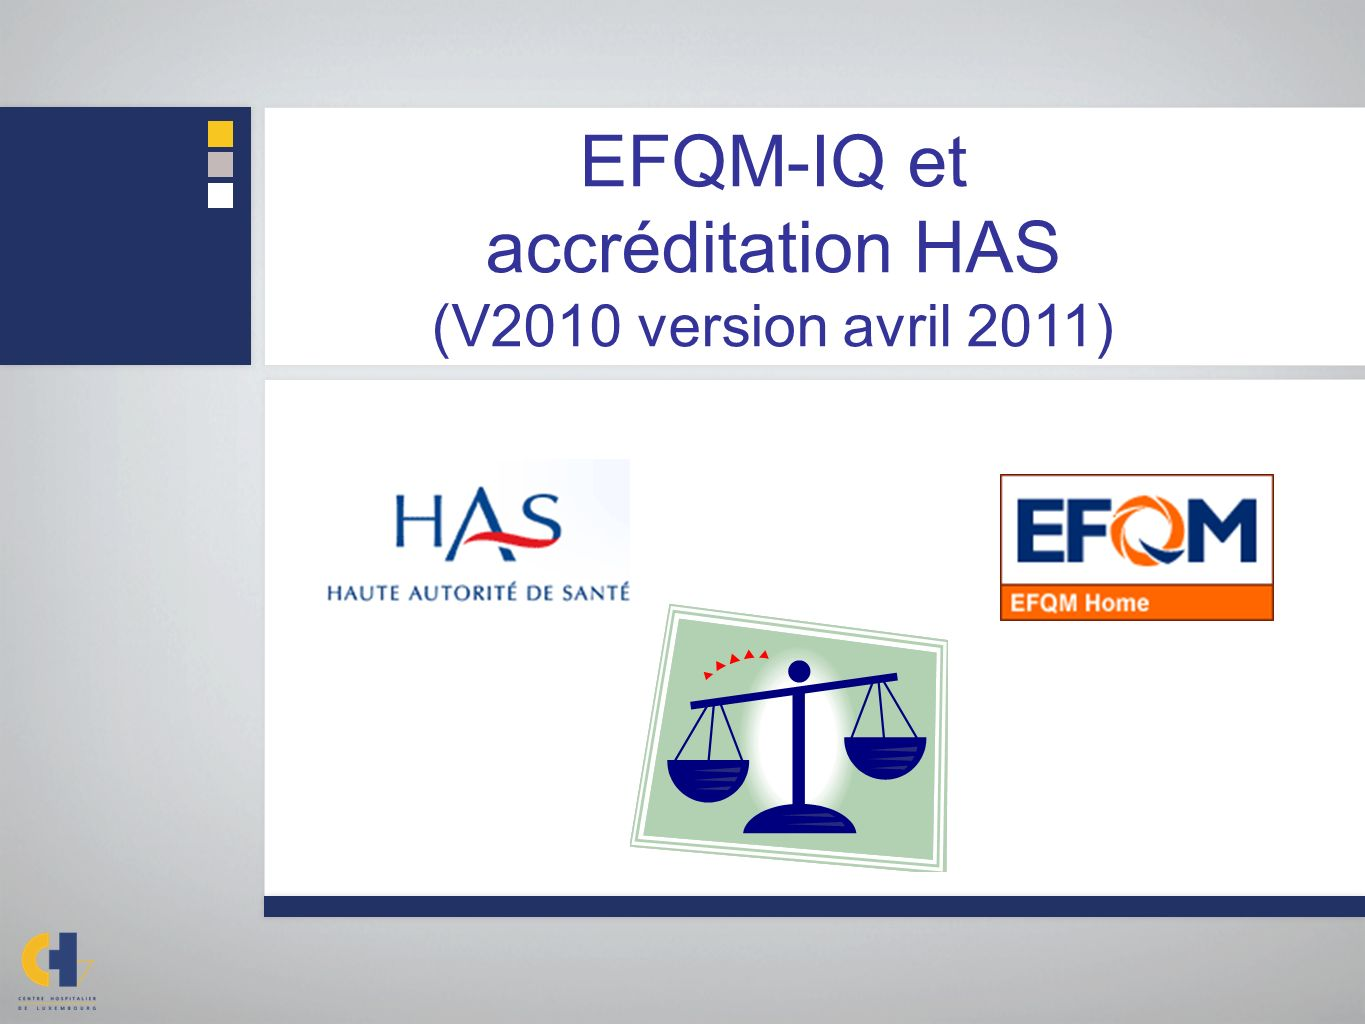 EFQM-IQ et accréditation HAS (V2010 version avril 2011)